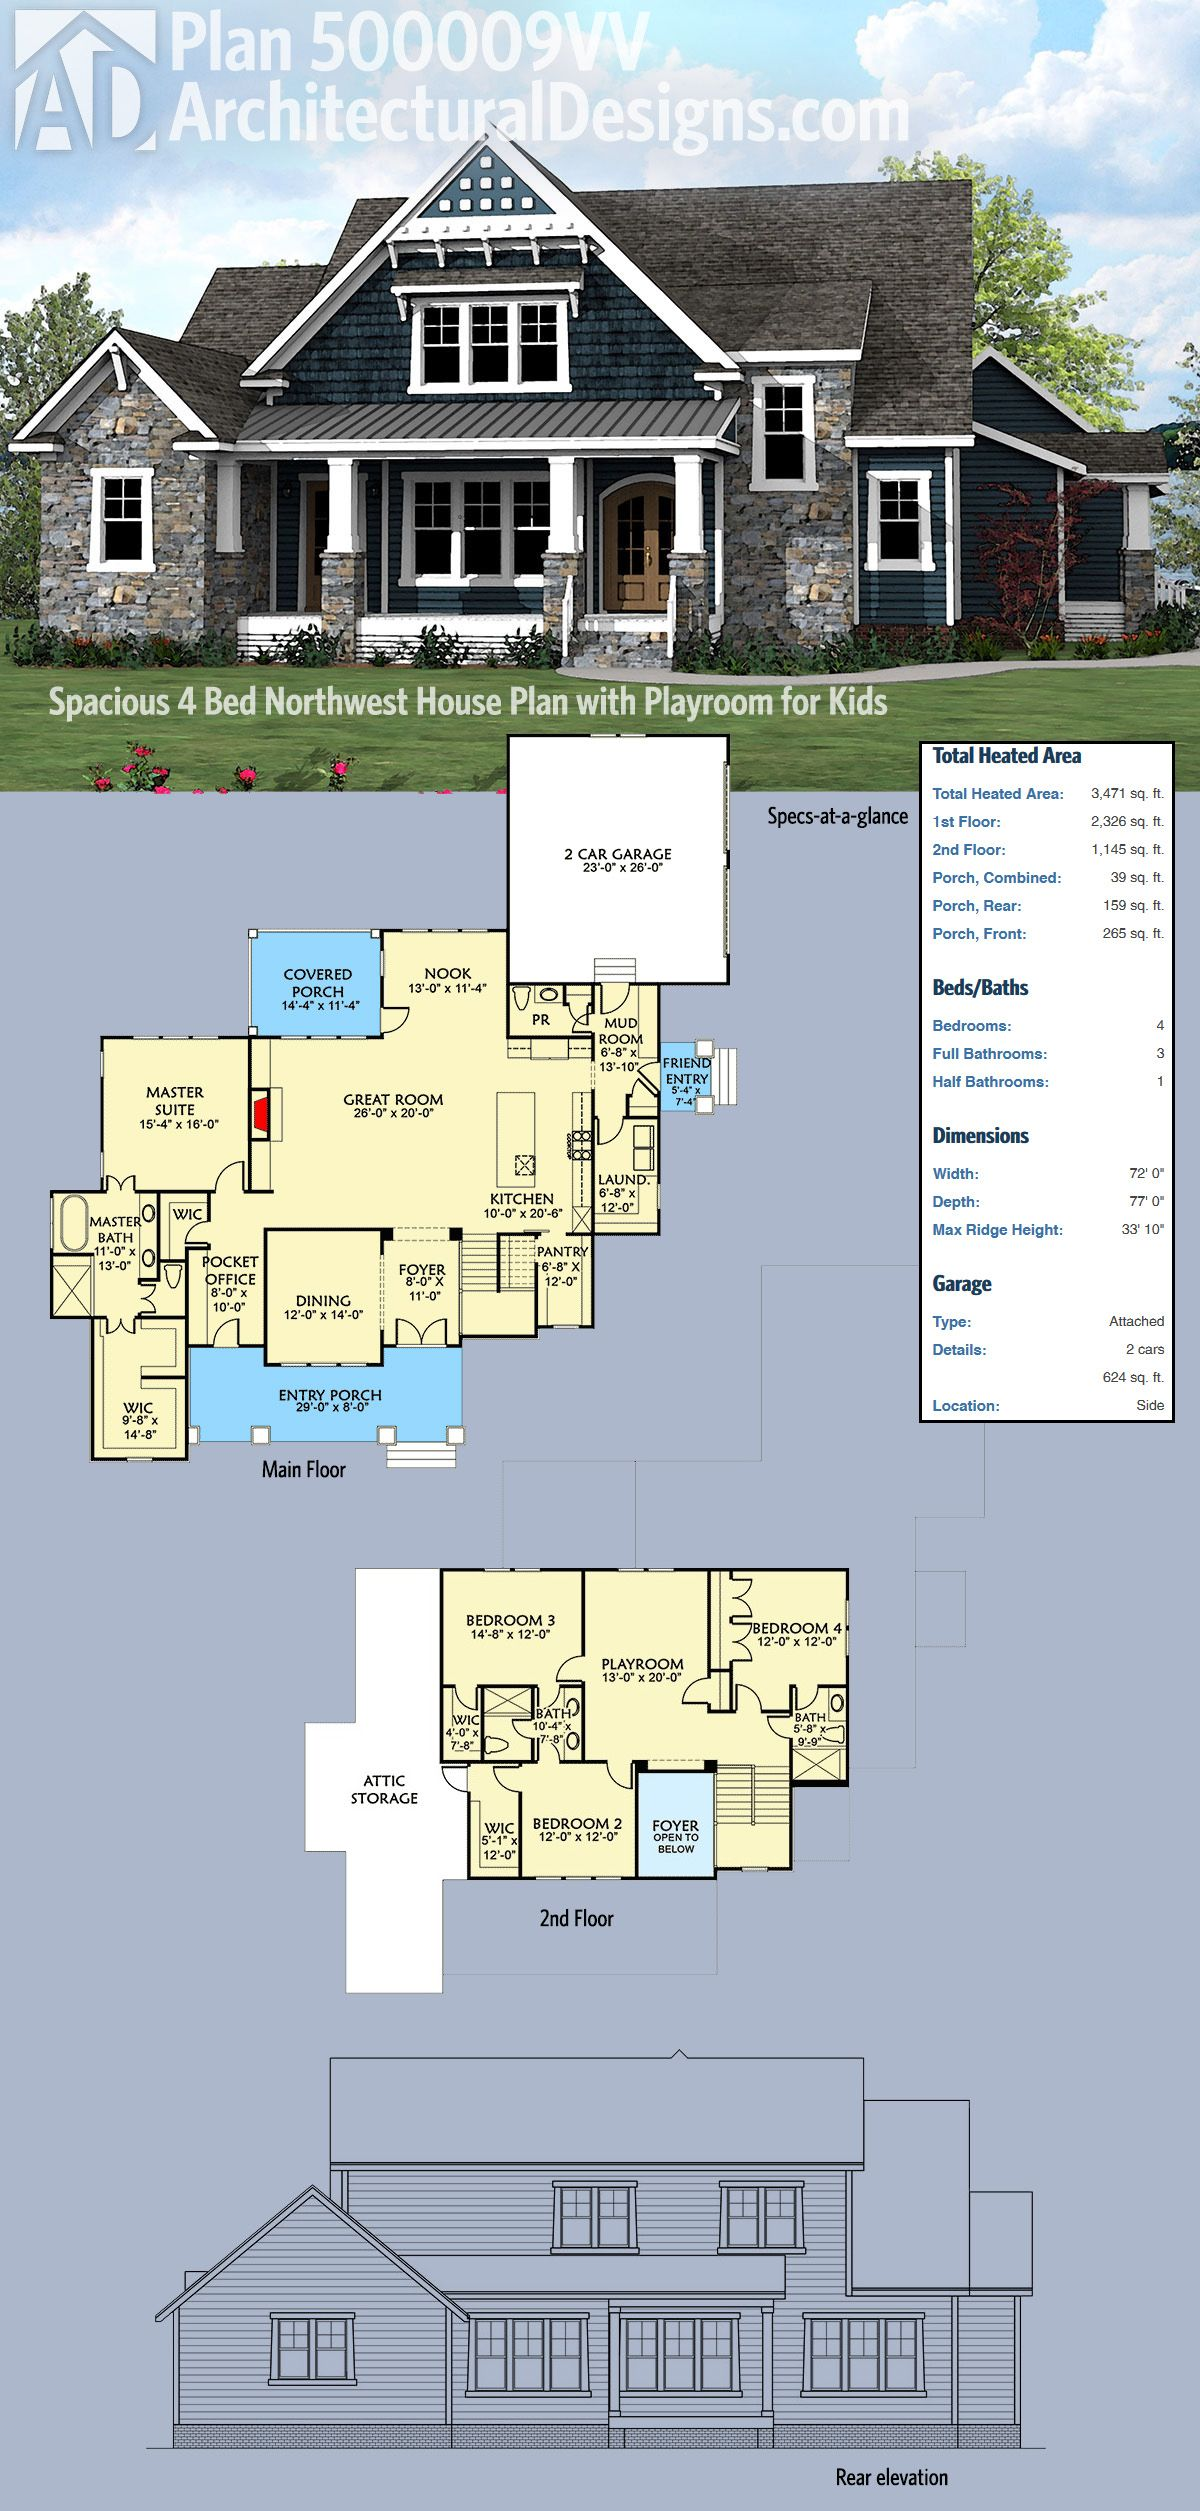 plan 500009vv spacious northwest house plan with playroom for kids - Northwest Home Floor Plans